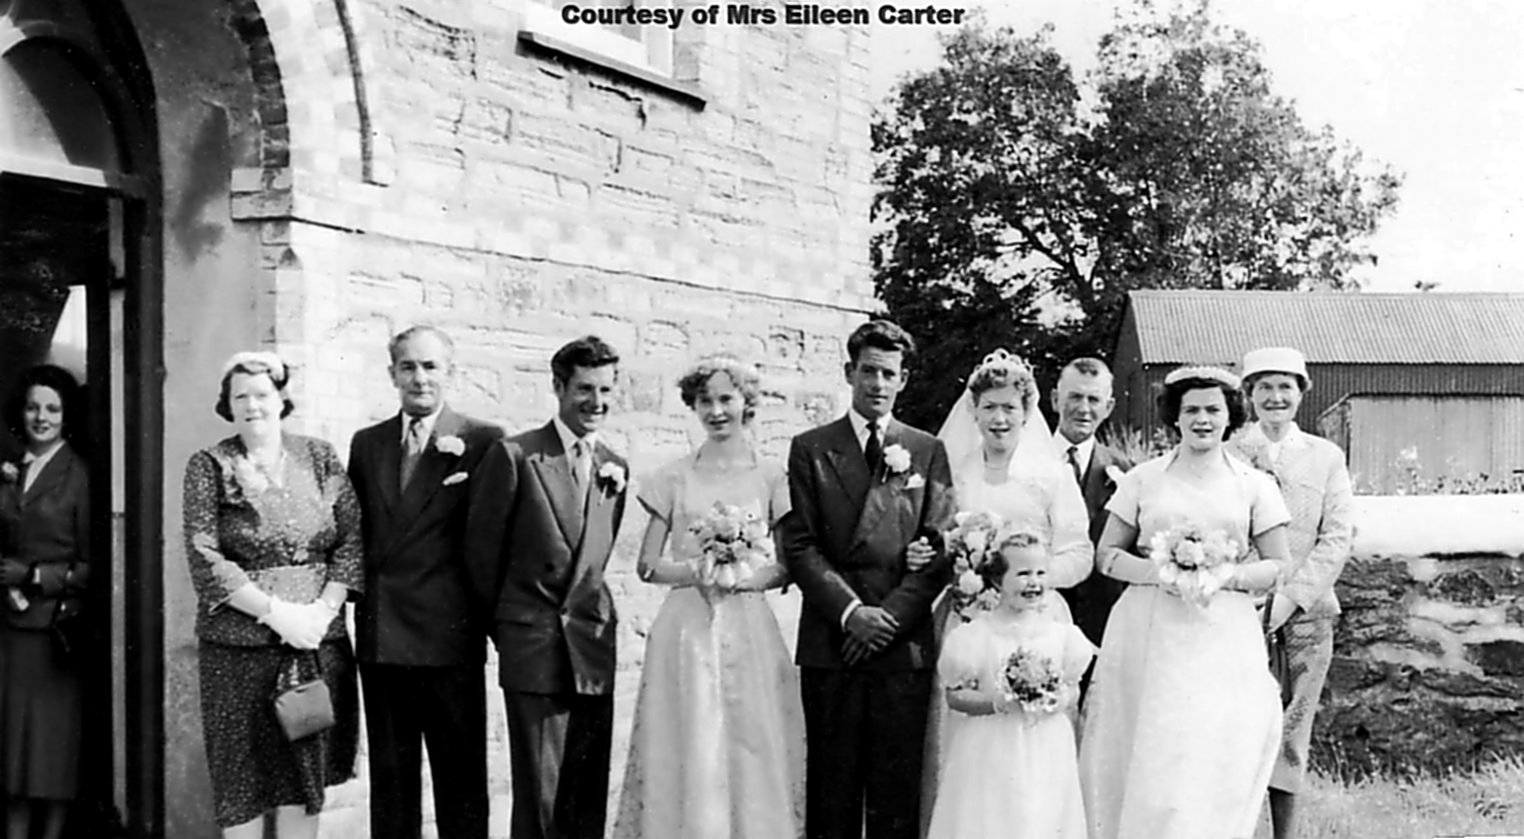 Tony Carter & Margaret Buddell Wedding 1956